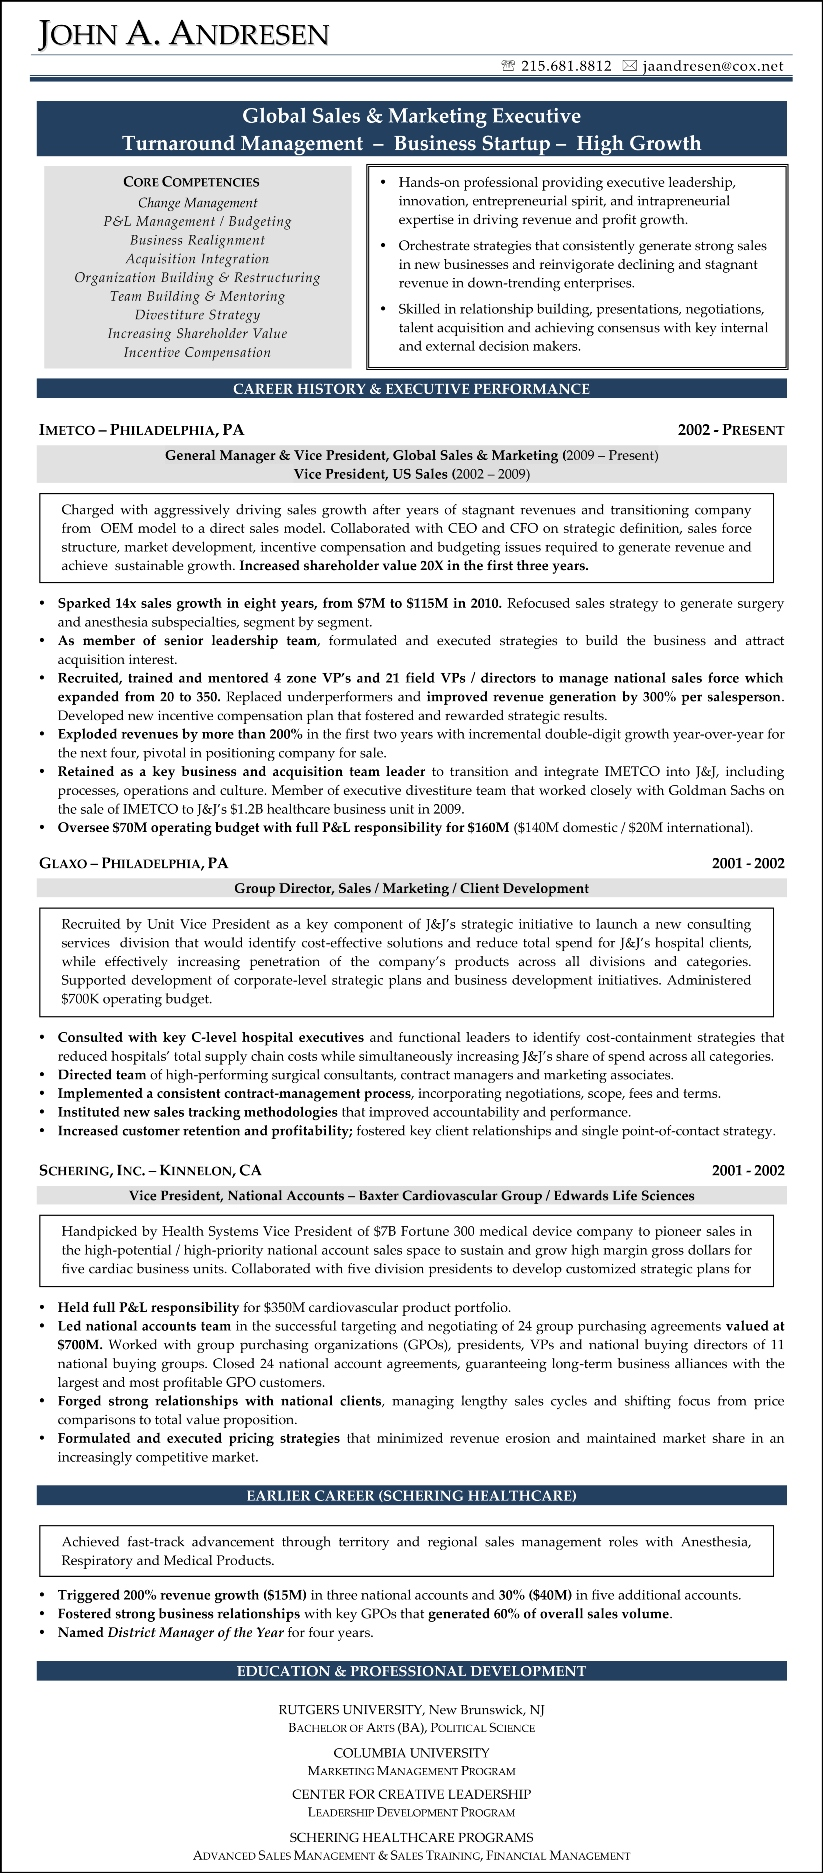 Sample Resume   John Andresen (Sales And Marketing)